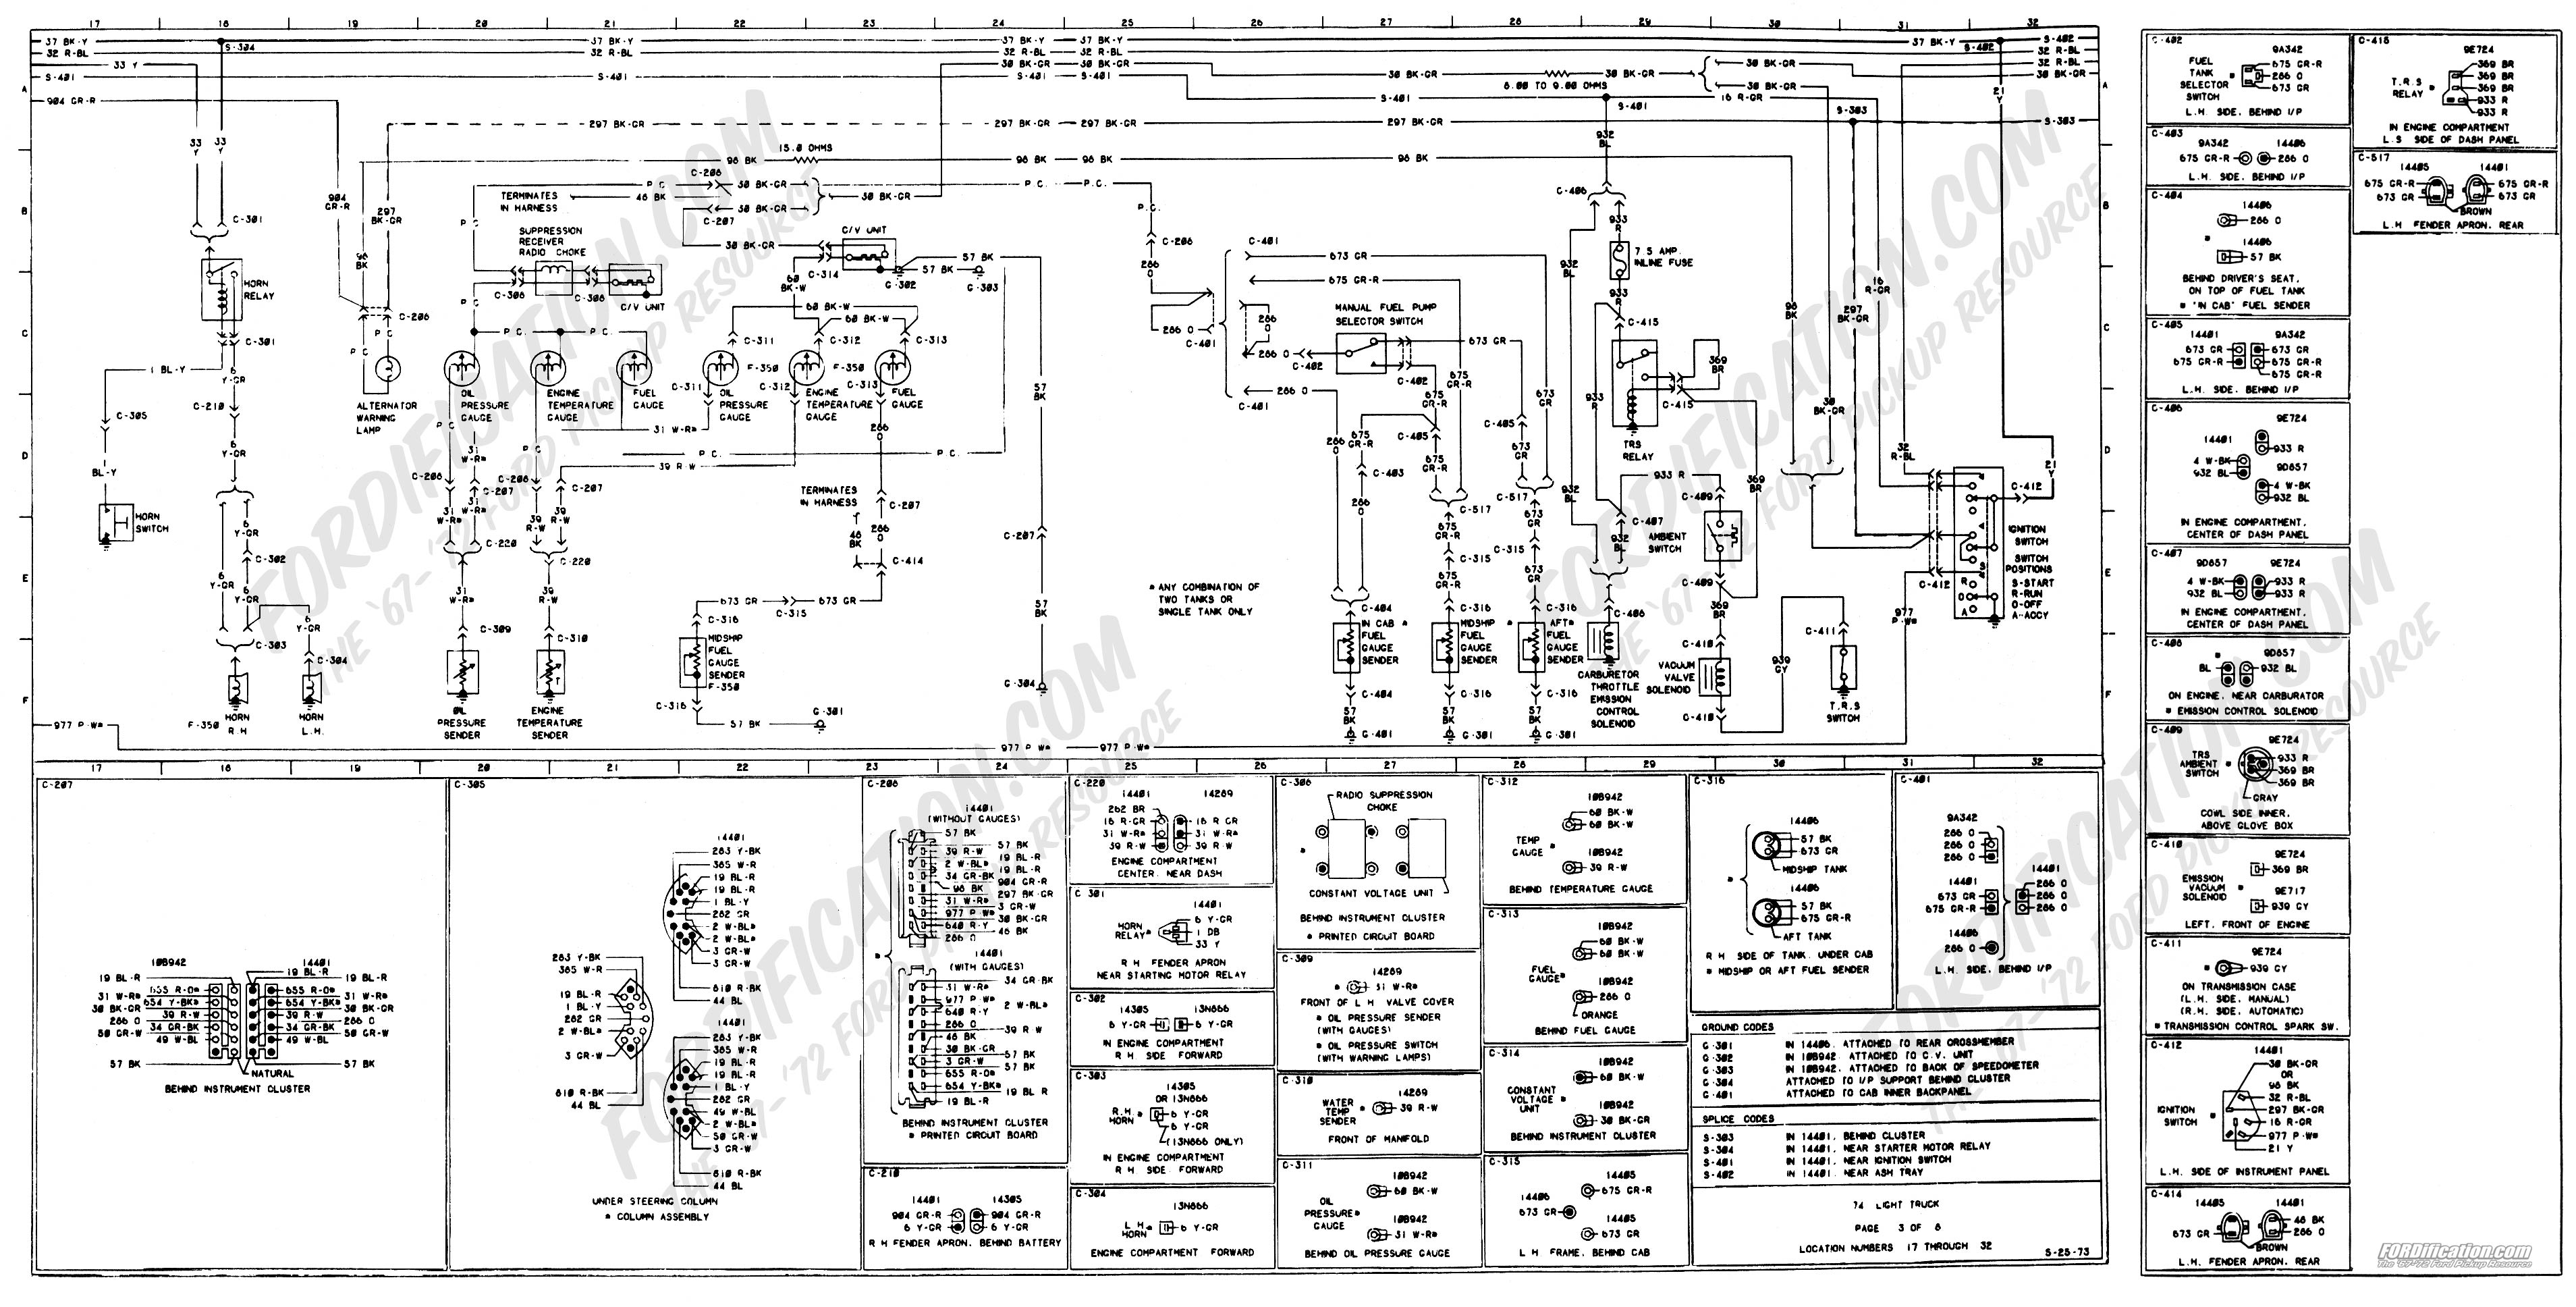 wiring_74master_3of8 1973 1979 ford truck wiring diagrams & schematics fordification net Diesel Ignition Switch Wiring Diagram at n-0.co